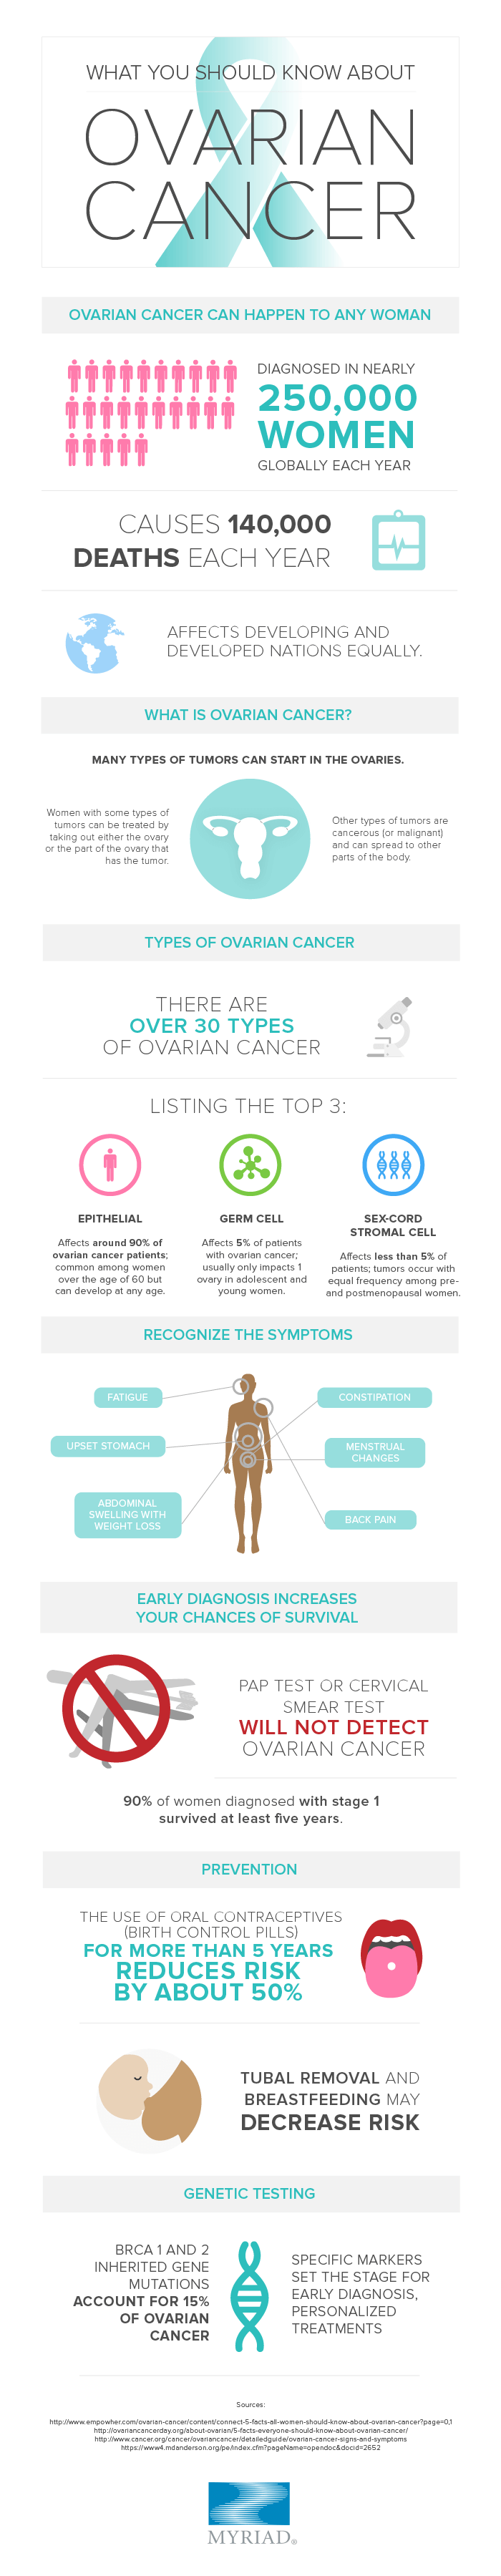 What You Should Know About Ovarian Cancer Cansa The Cancer Association Of South Africa